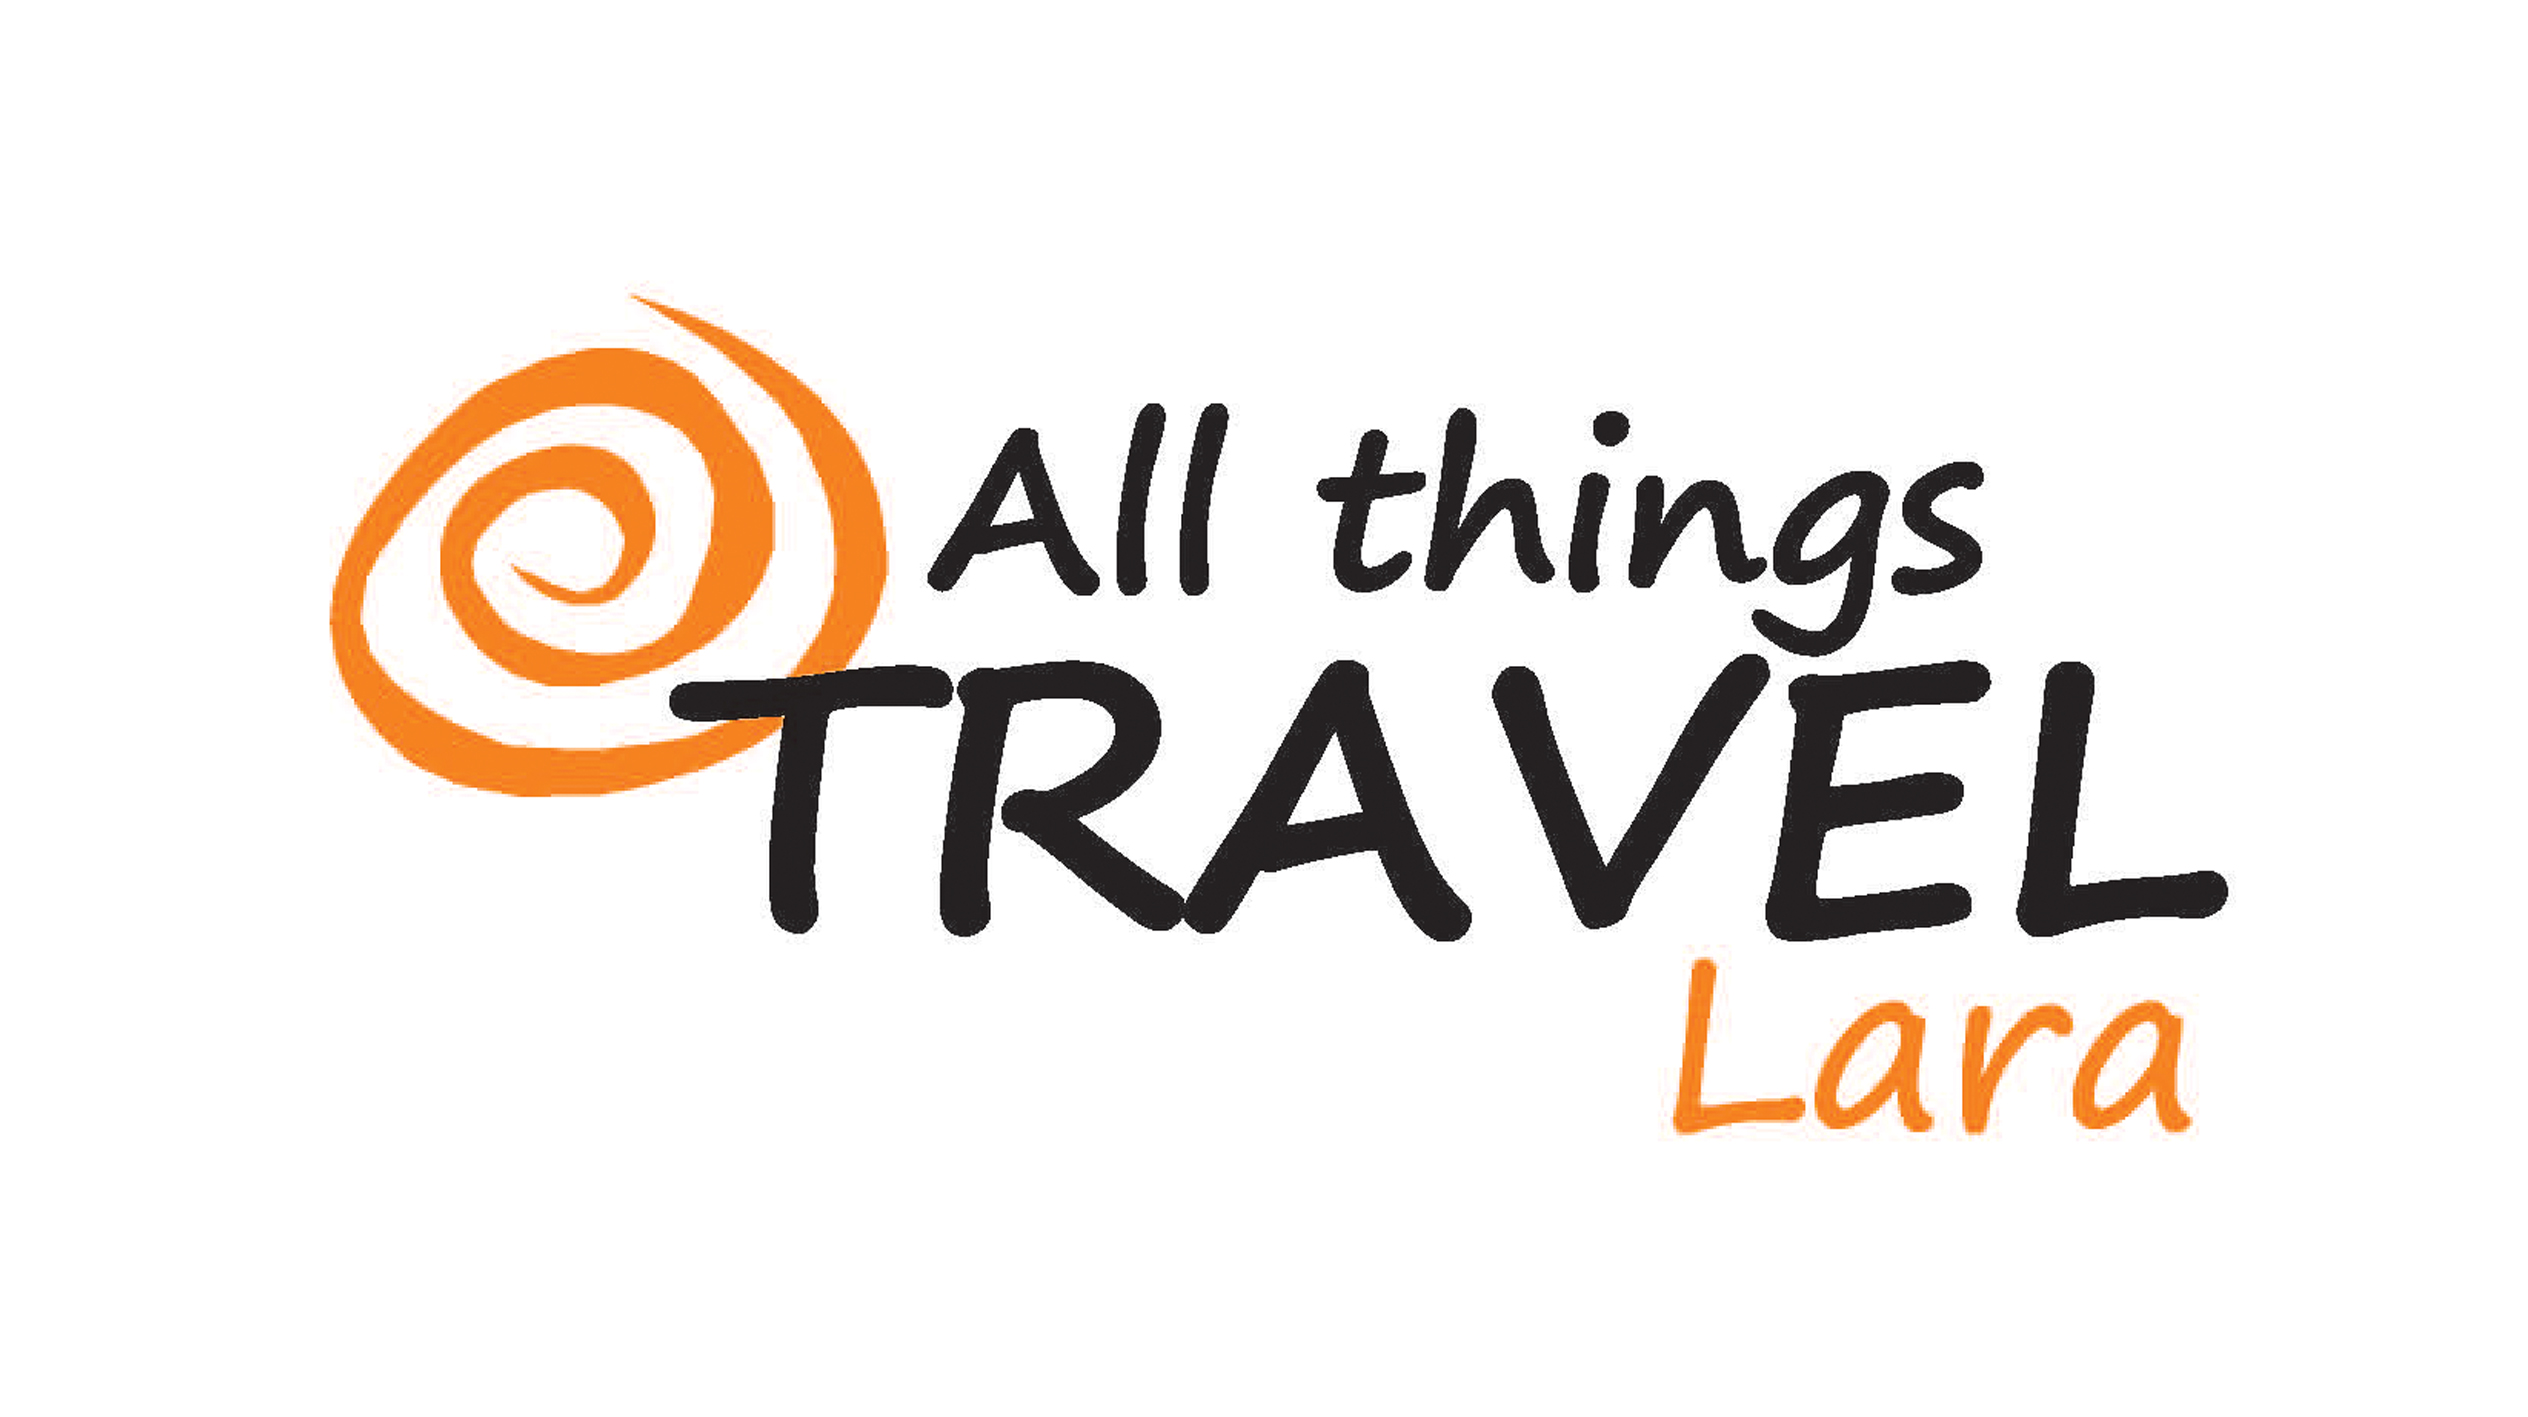 AlthingsTravel